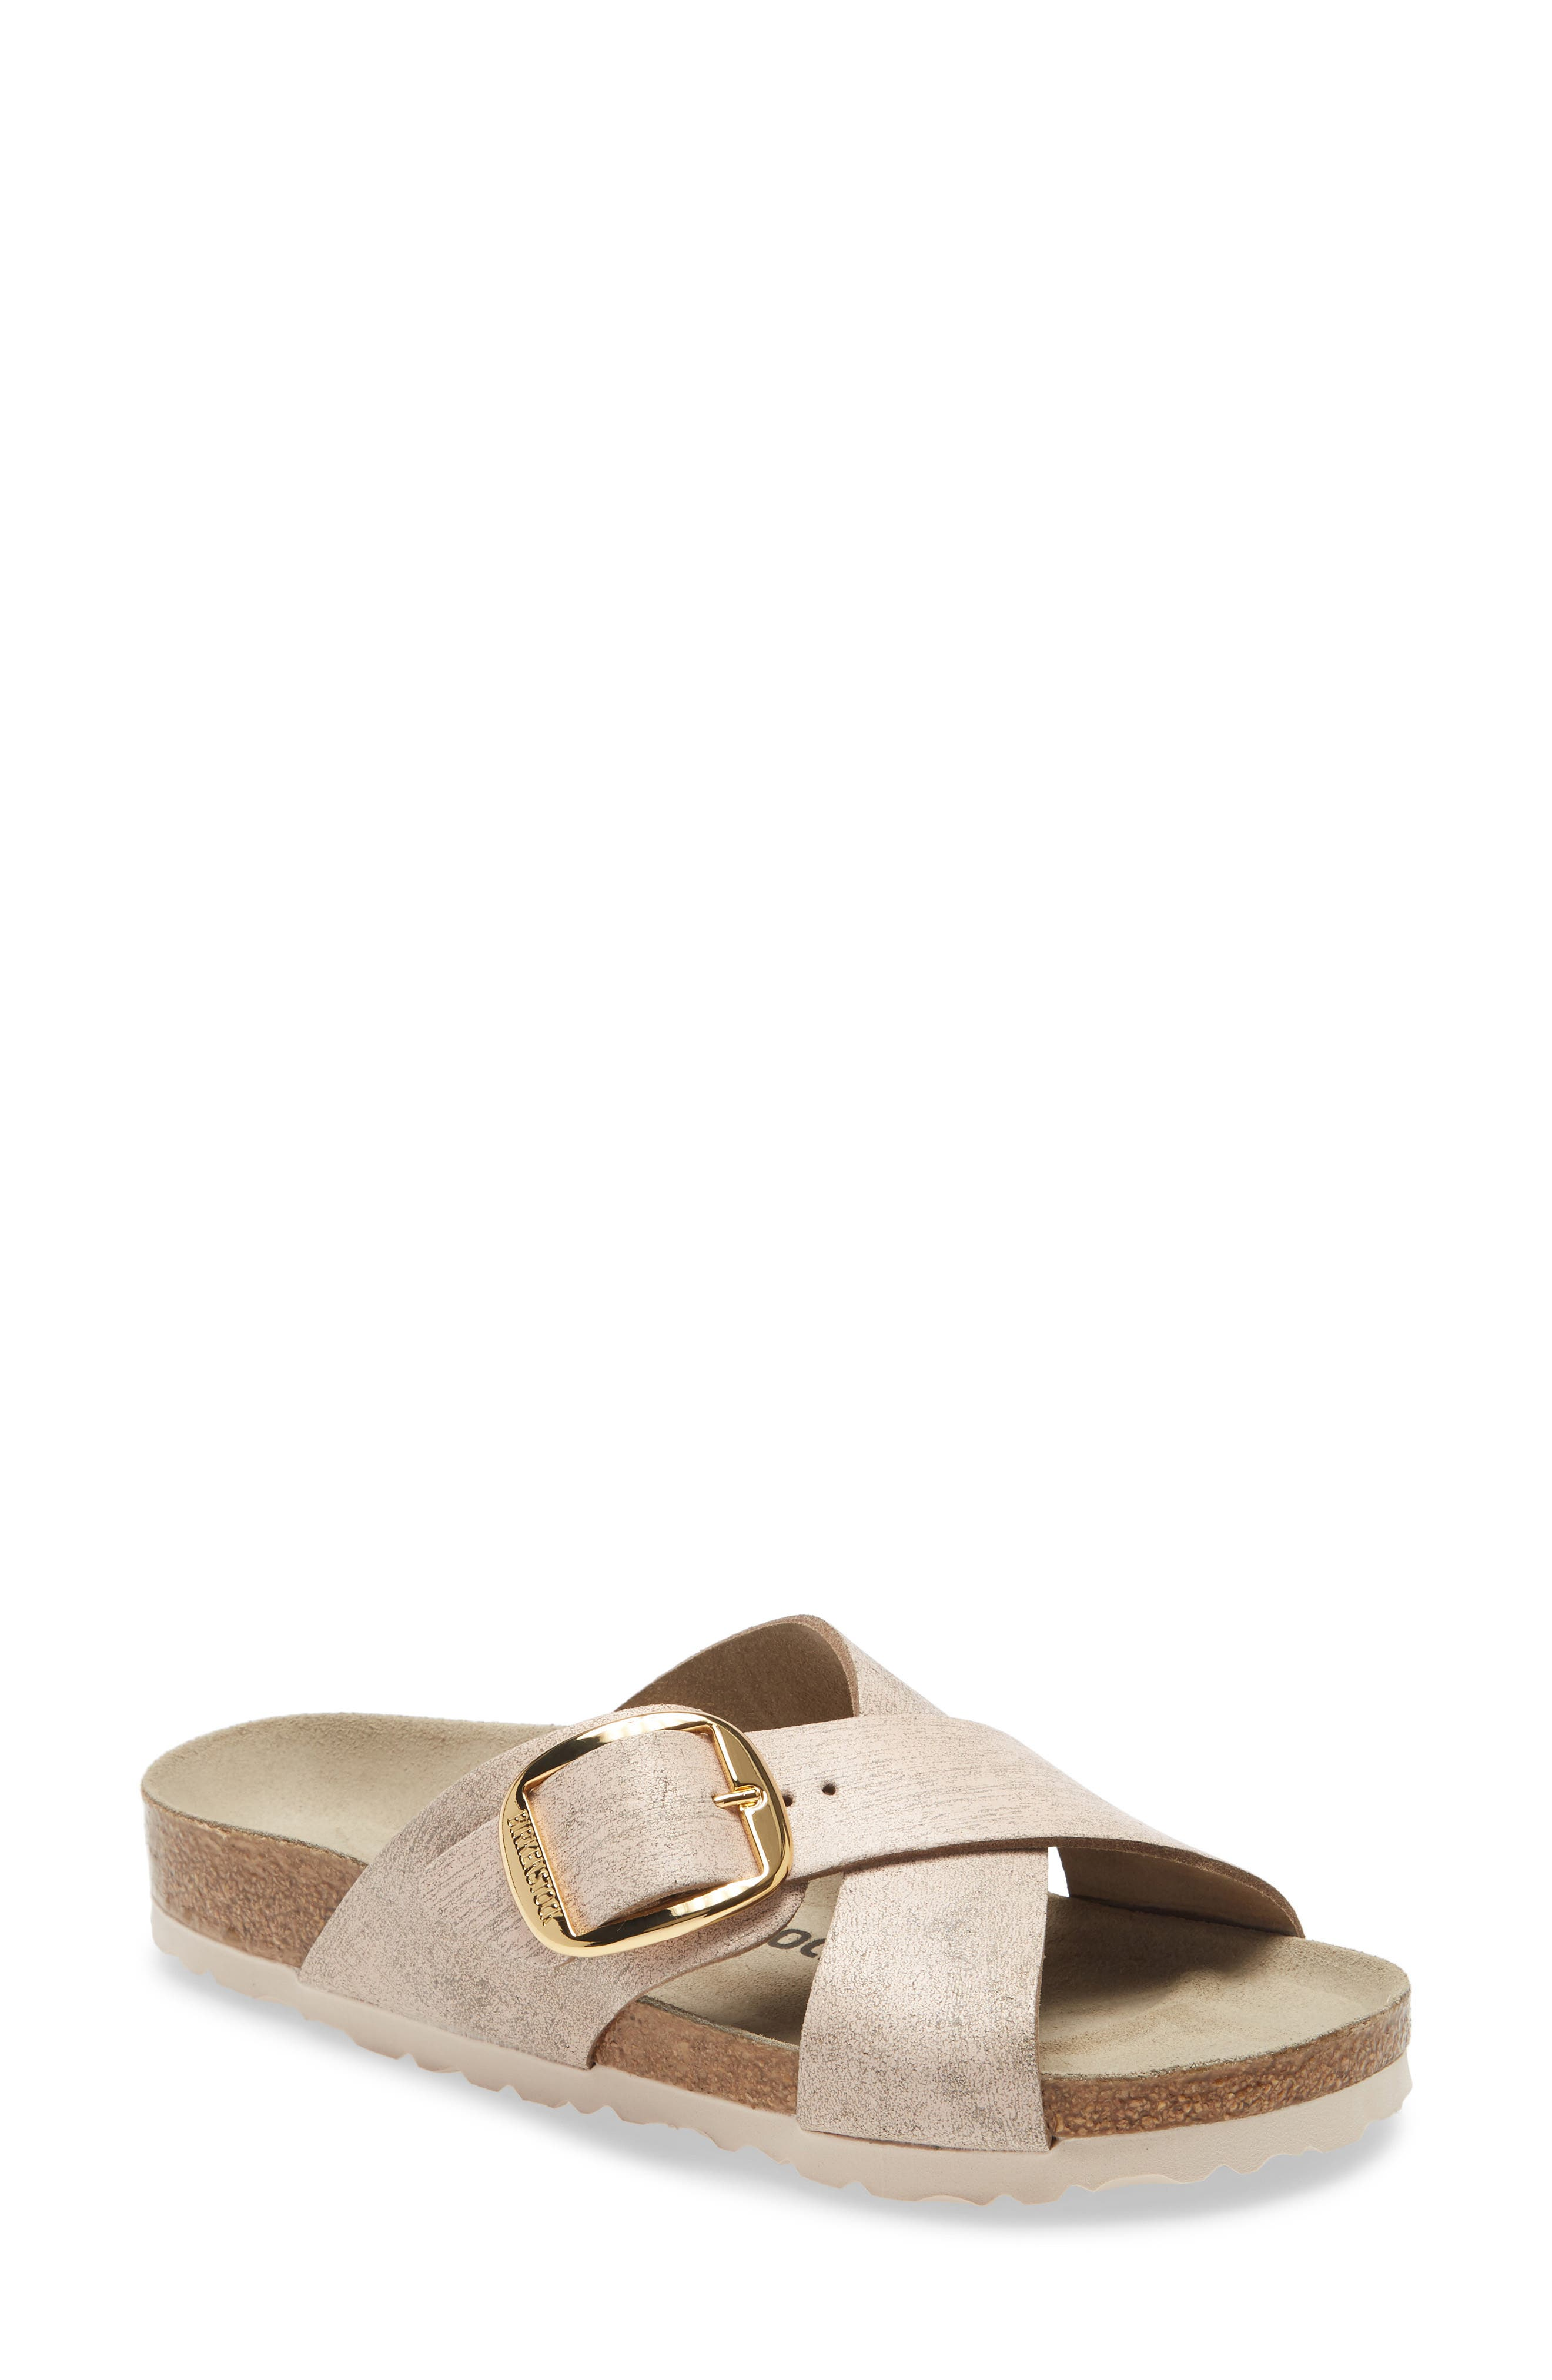 Birkenstock Siena Big Buckle Slide Sandal (Women)